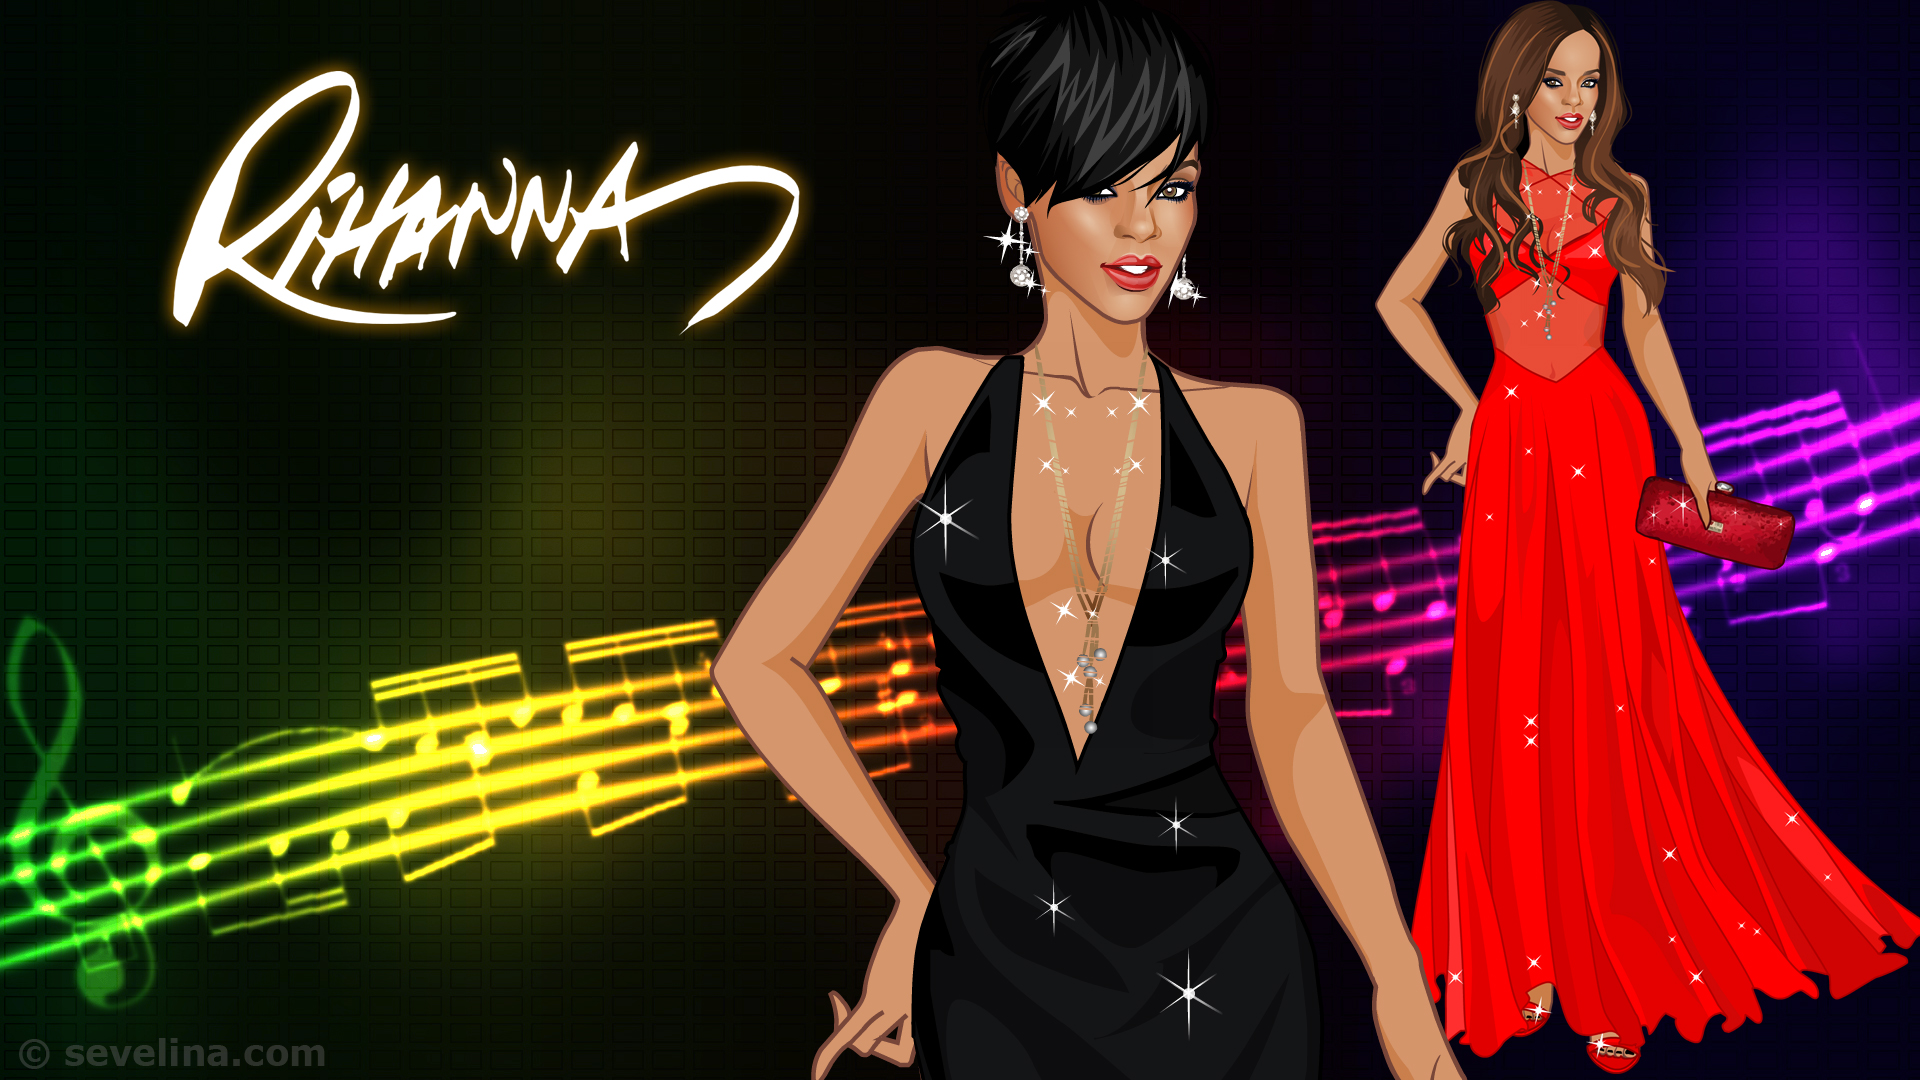 rihanna-wallpapers-2014-sevelina-dress-up-games-3